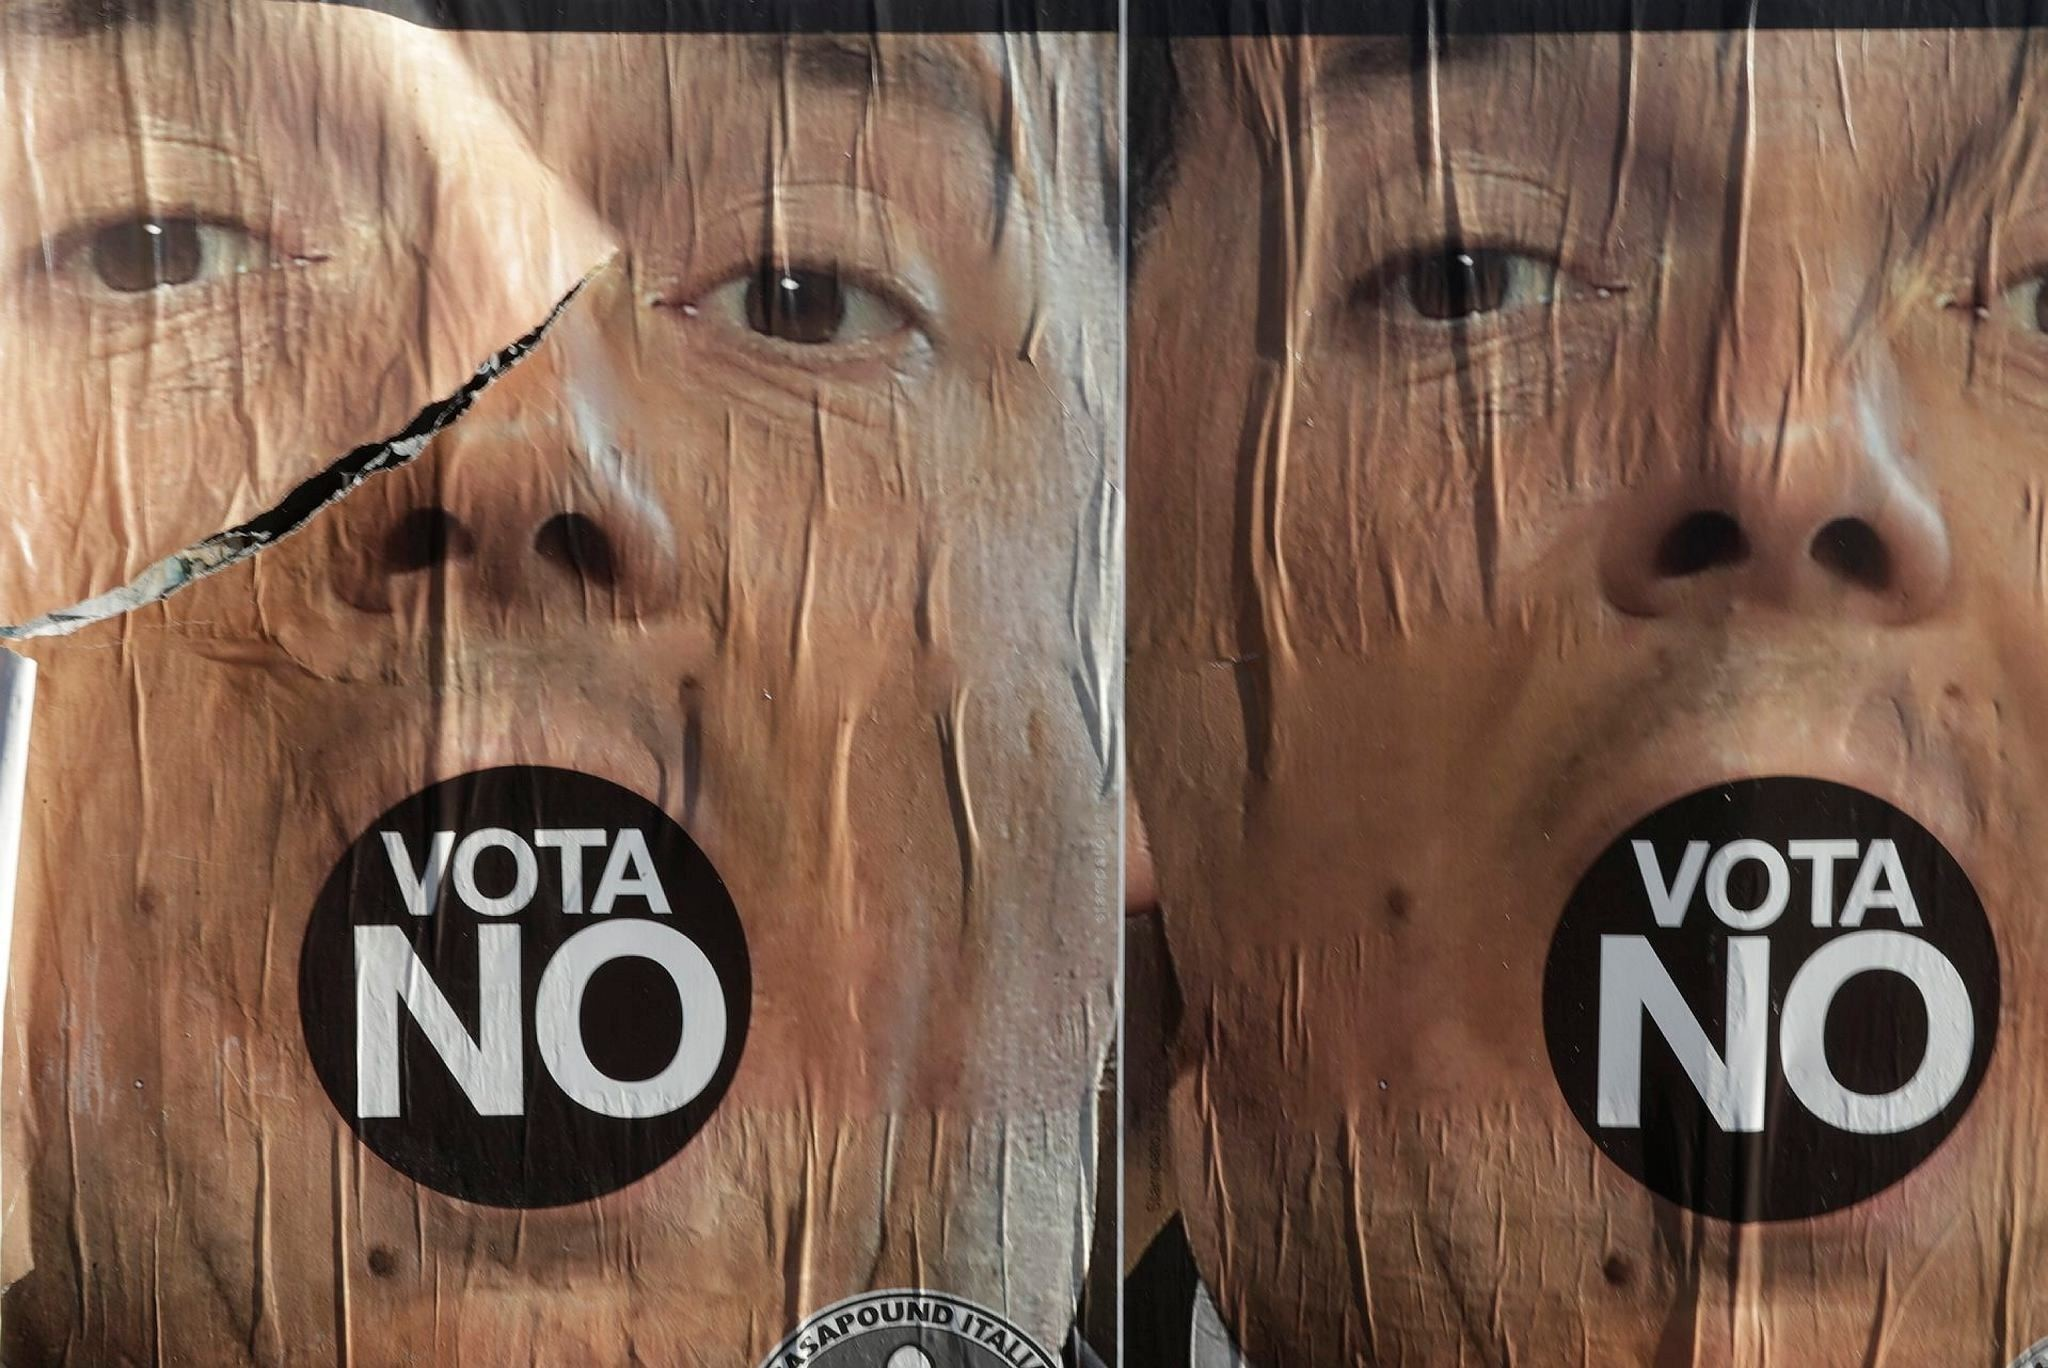 Anti-referendum posters showing Premier Matteo Renzi are seen in Rome a day after the referendum vote, Monday, Dec. 5, 2016. (AP Photo)